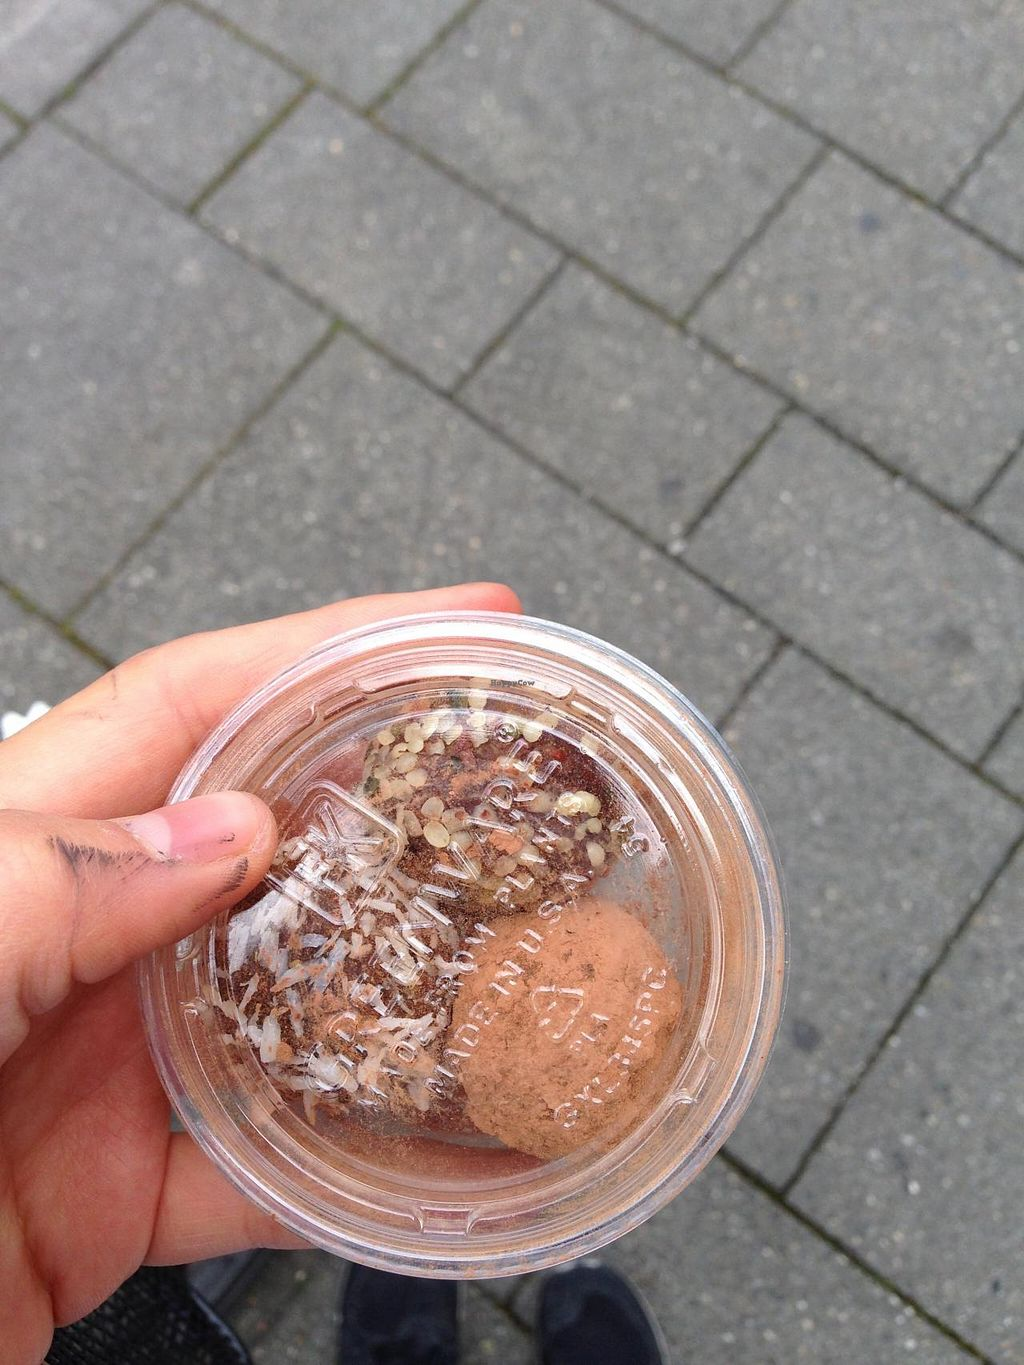 """Photo of CLOSED: VIDA  by <a href=""""/members/profile/veganxsophie"""">veganxsophie</a> <br/>vegan date balls with coconut, cacao and hemp seeds <br/> July 9, 2015  - <a href='/contact/abuse/image/59025/108682'>Report</a>"""